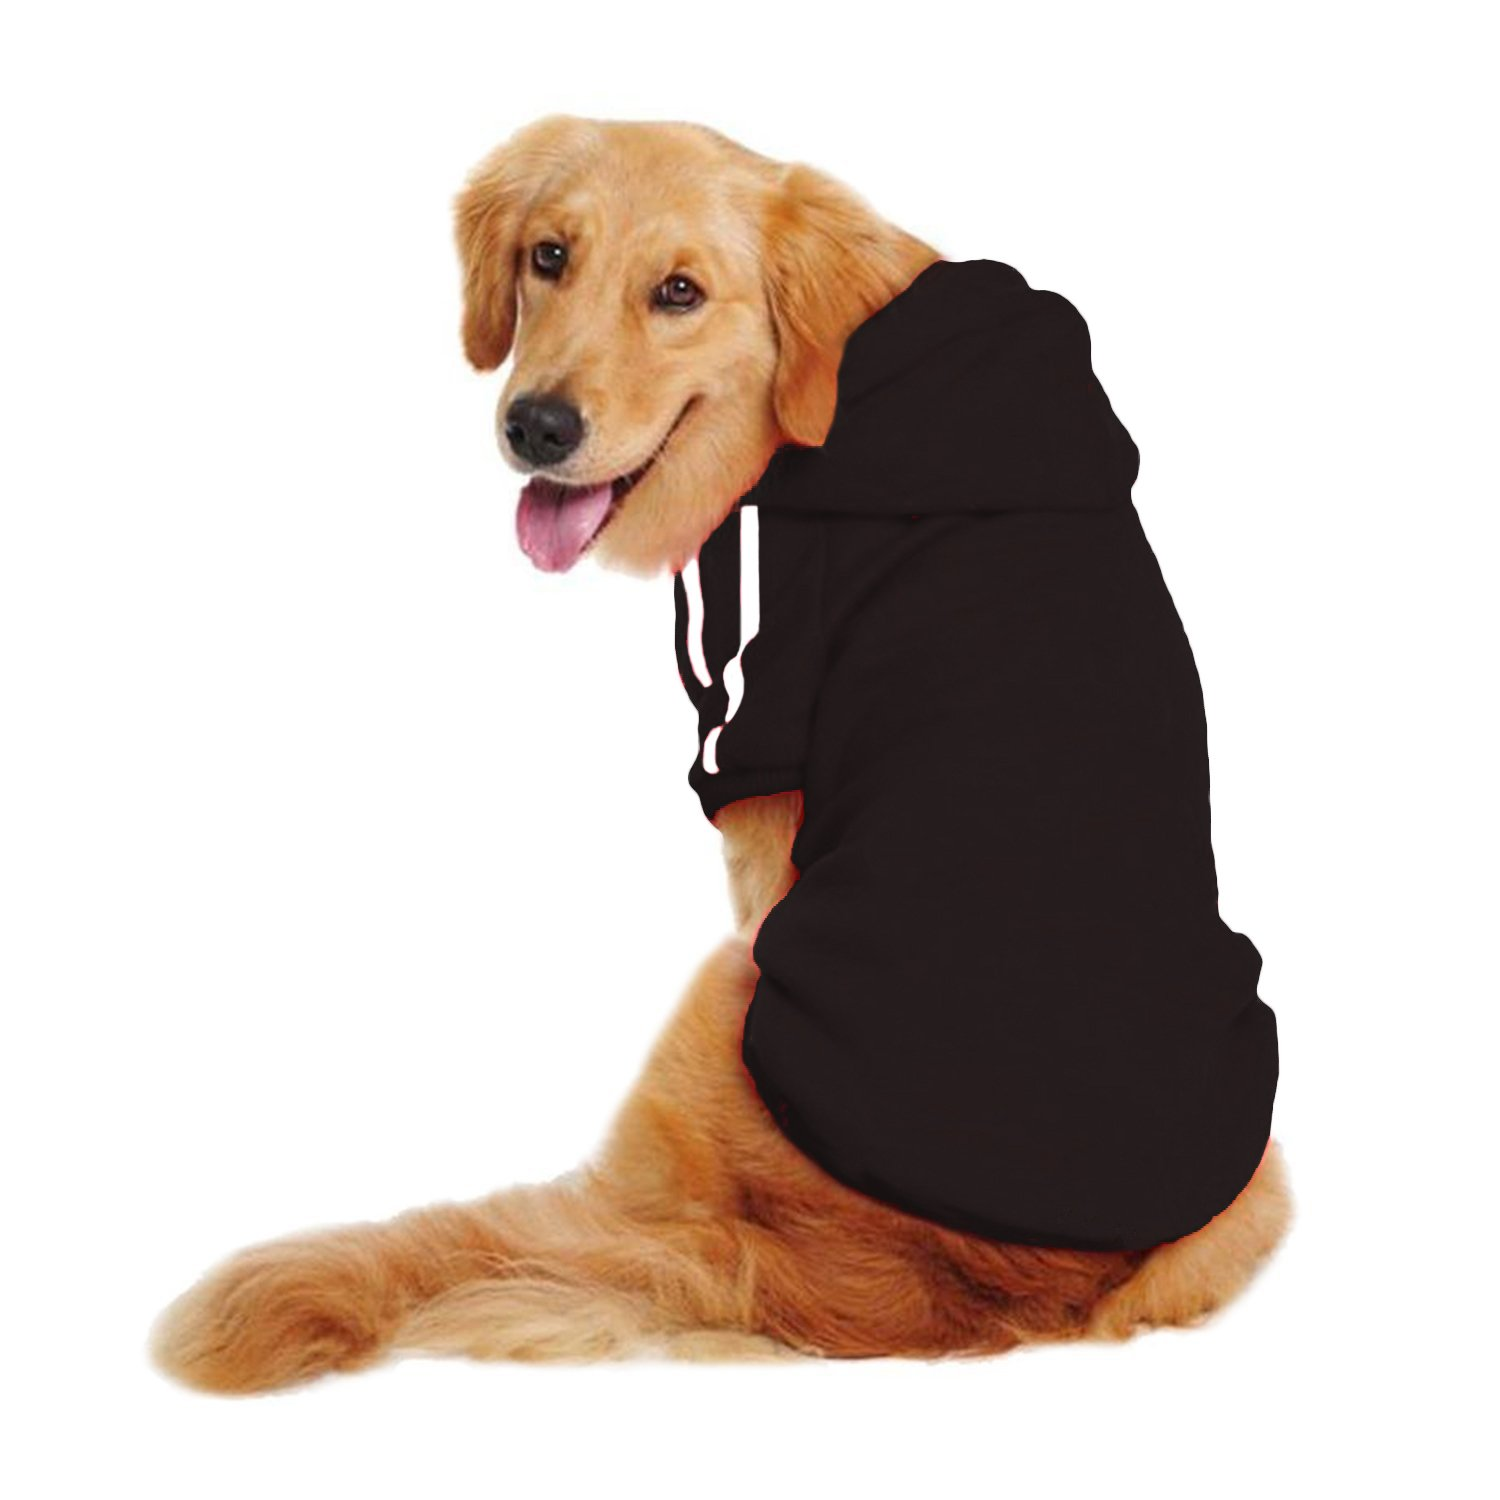 Black 6XL Black 6XL LESYPET Dog Sweater Hoodie Big Dog Hoodies Sports Clothes, 6XL, Black